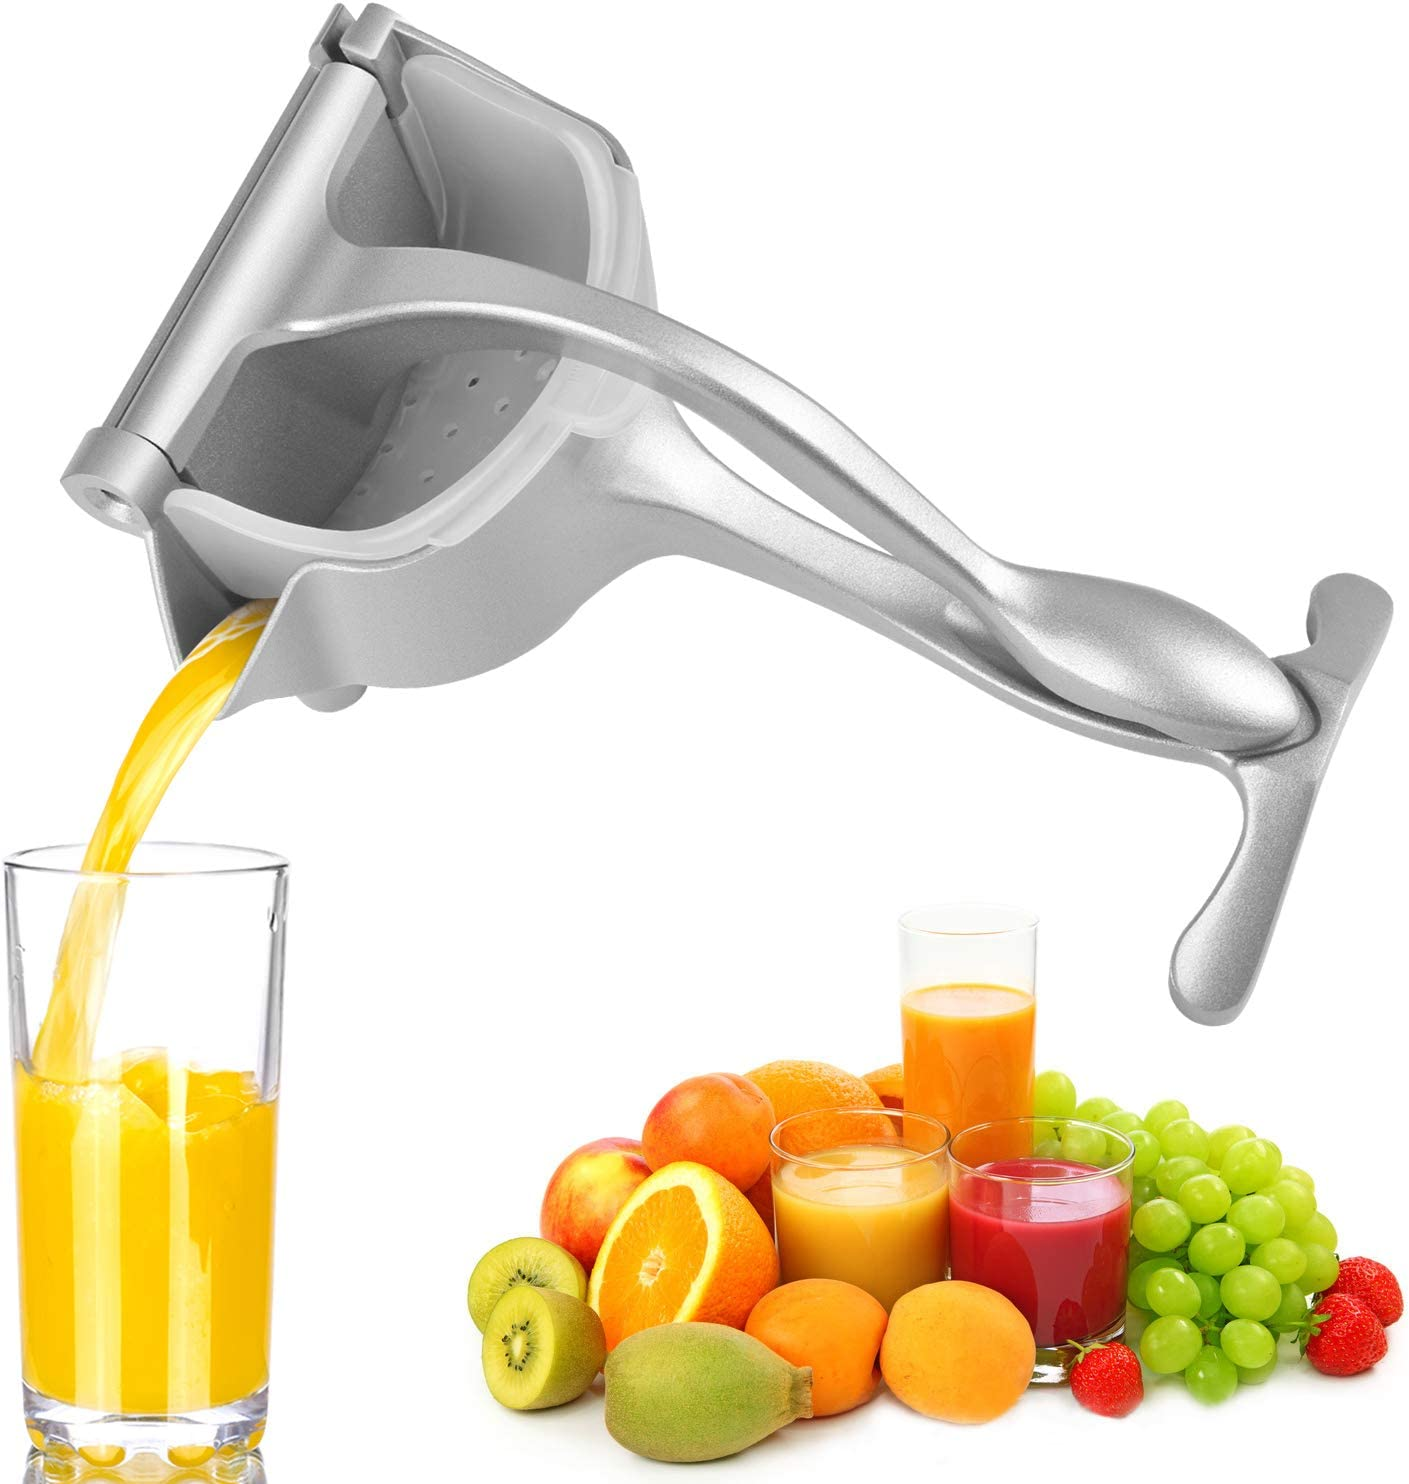 Stainless Steel Manual Juicer Hand Press Lemon Orange Juicer Healthy Fruit Juicer Citrus Extractor Tool (Silver)